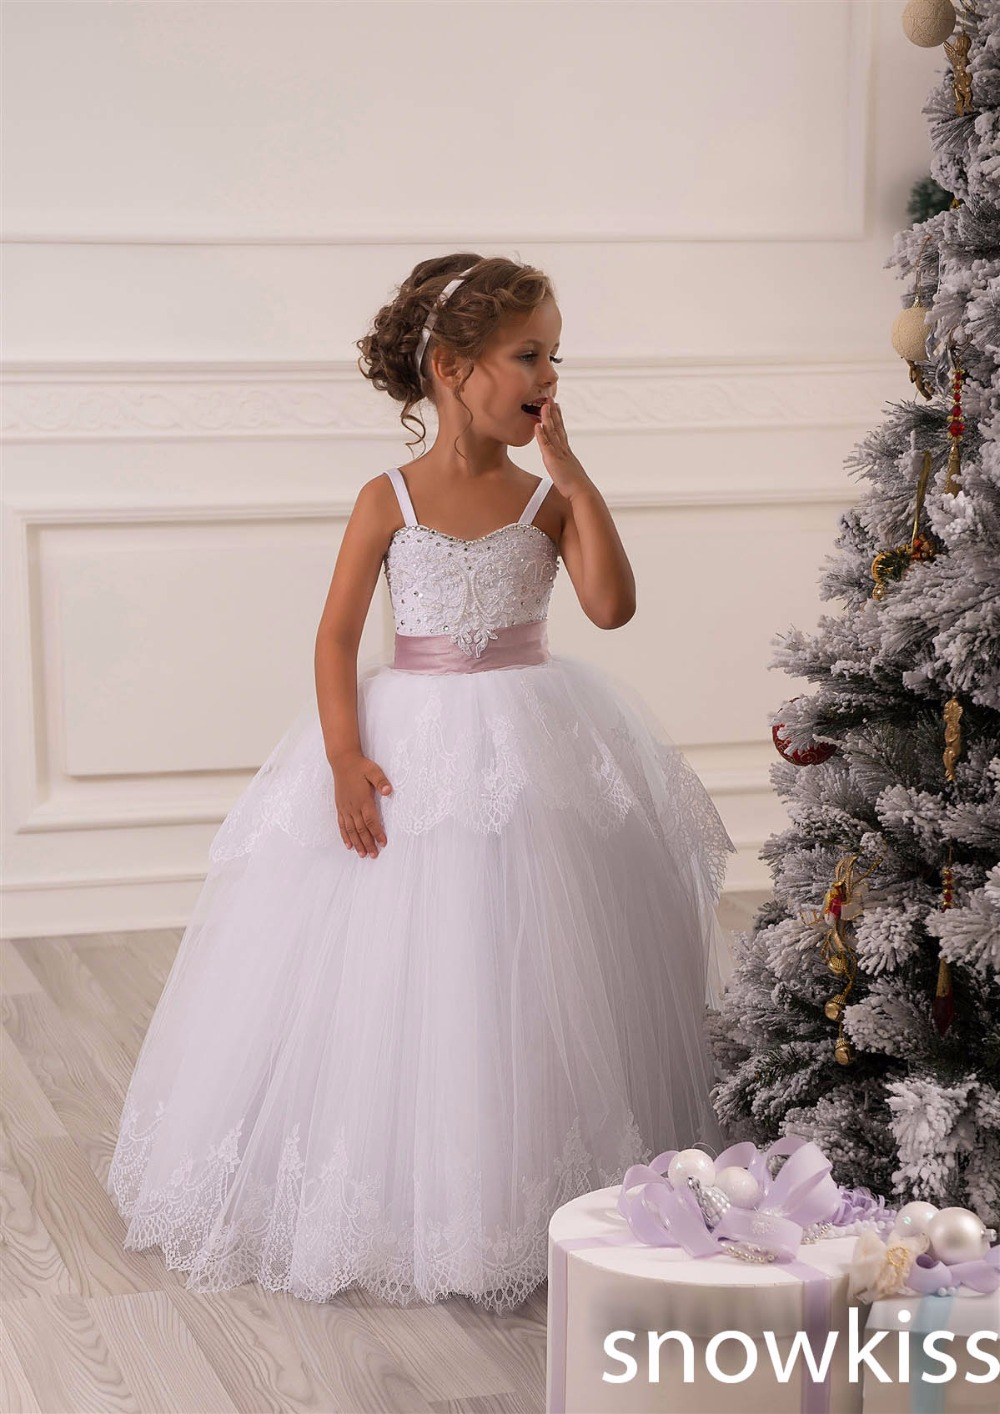 New Cute White Baby party frocks Princess Ball Gown with Appliques Flower Girl Dresses for wedding occasion kids evening dress